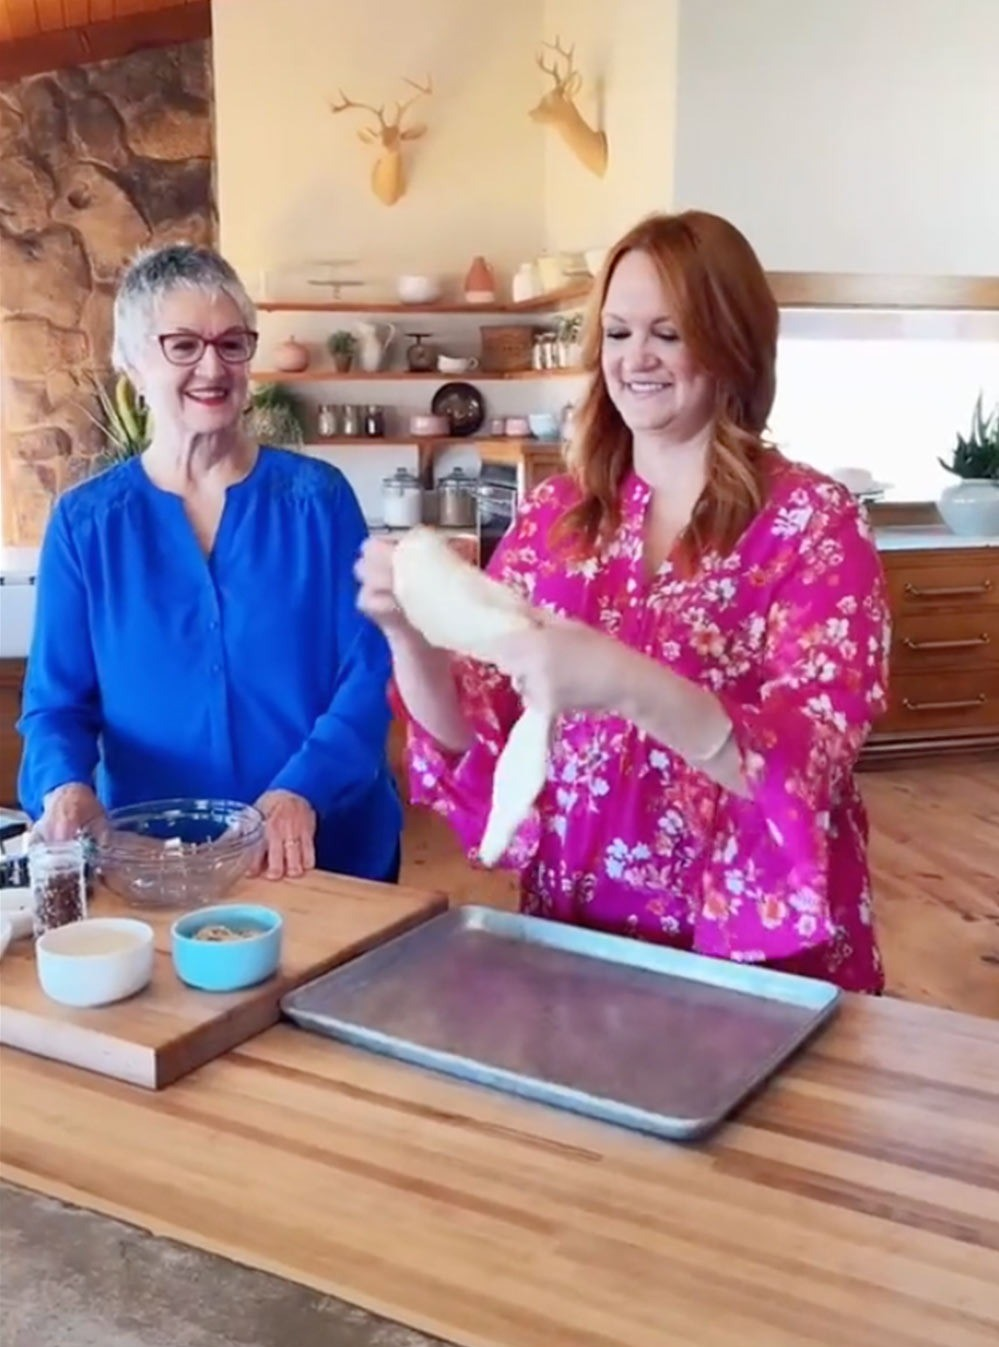 Ree Drummond Brings Her Mom to the Ranch for Special Pioneer Woman Shoot: 'We Had a Blast'